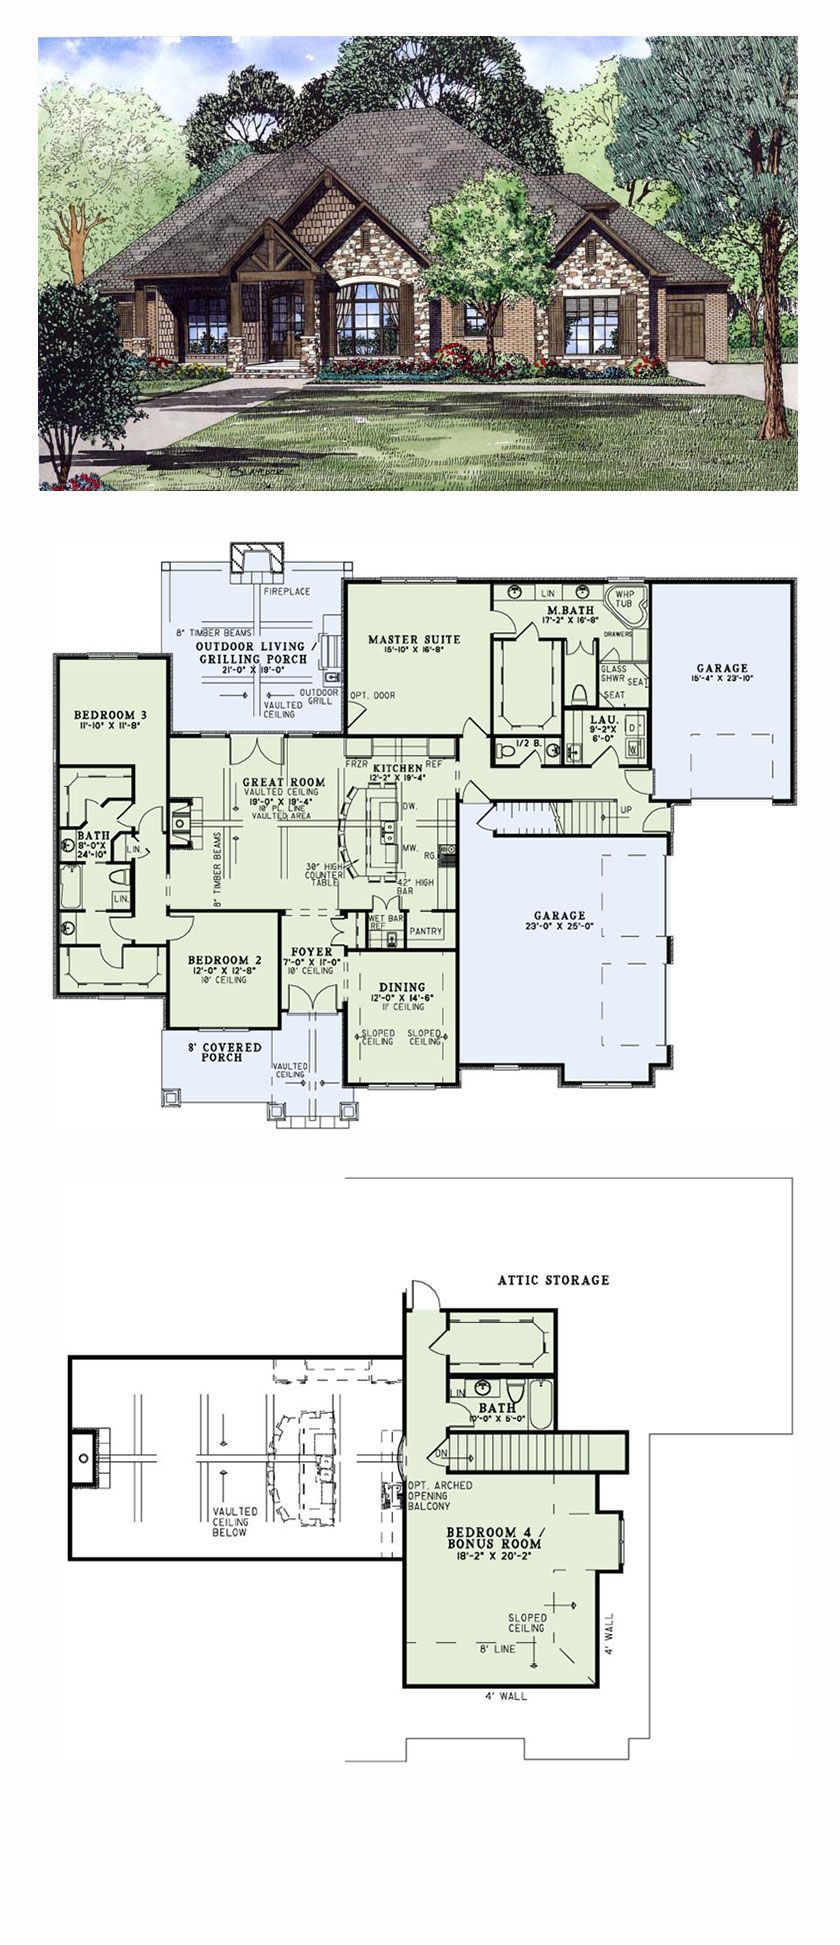 Craftsman Style COOL House Plan ID chp 54419